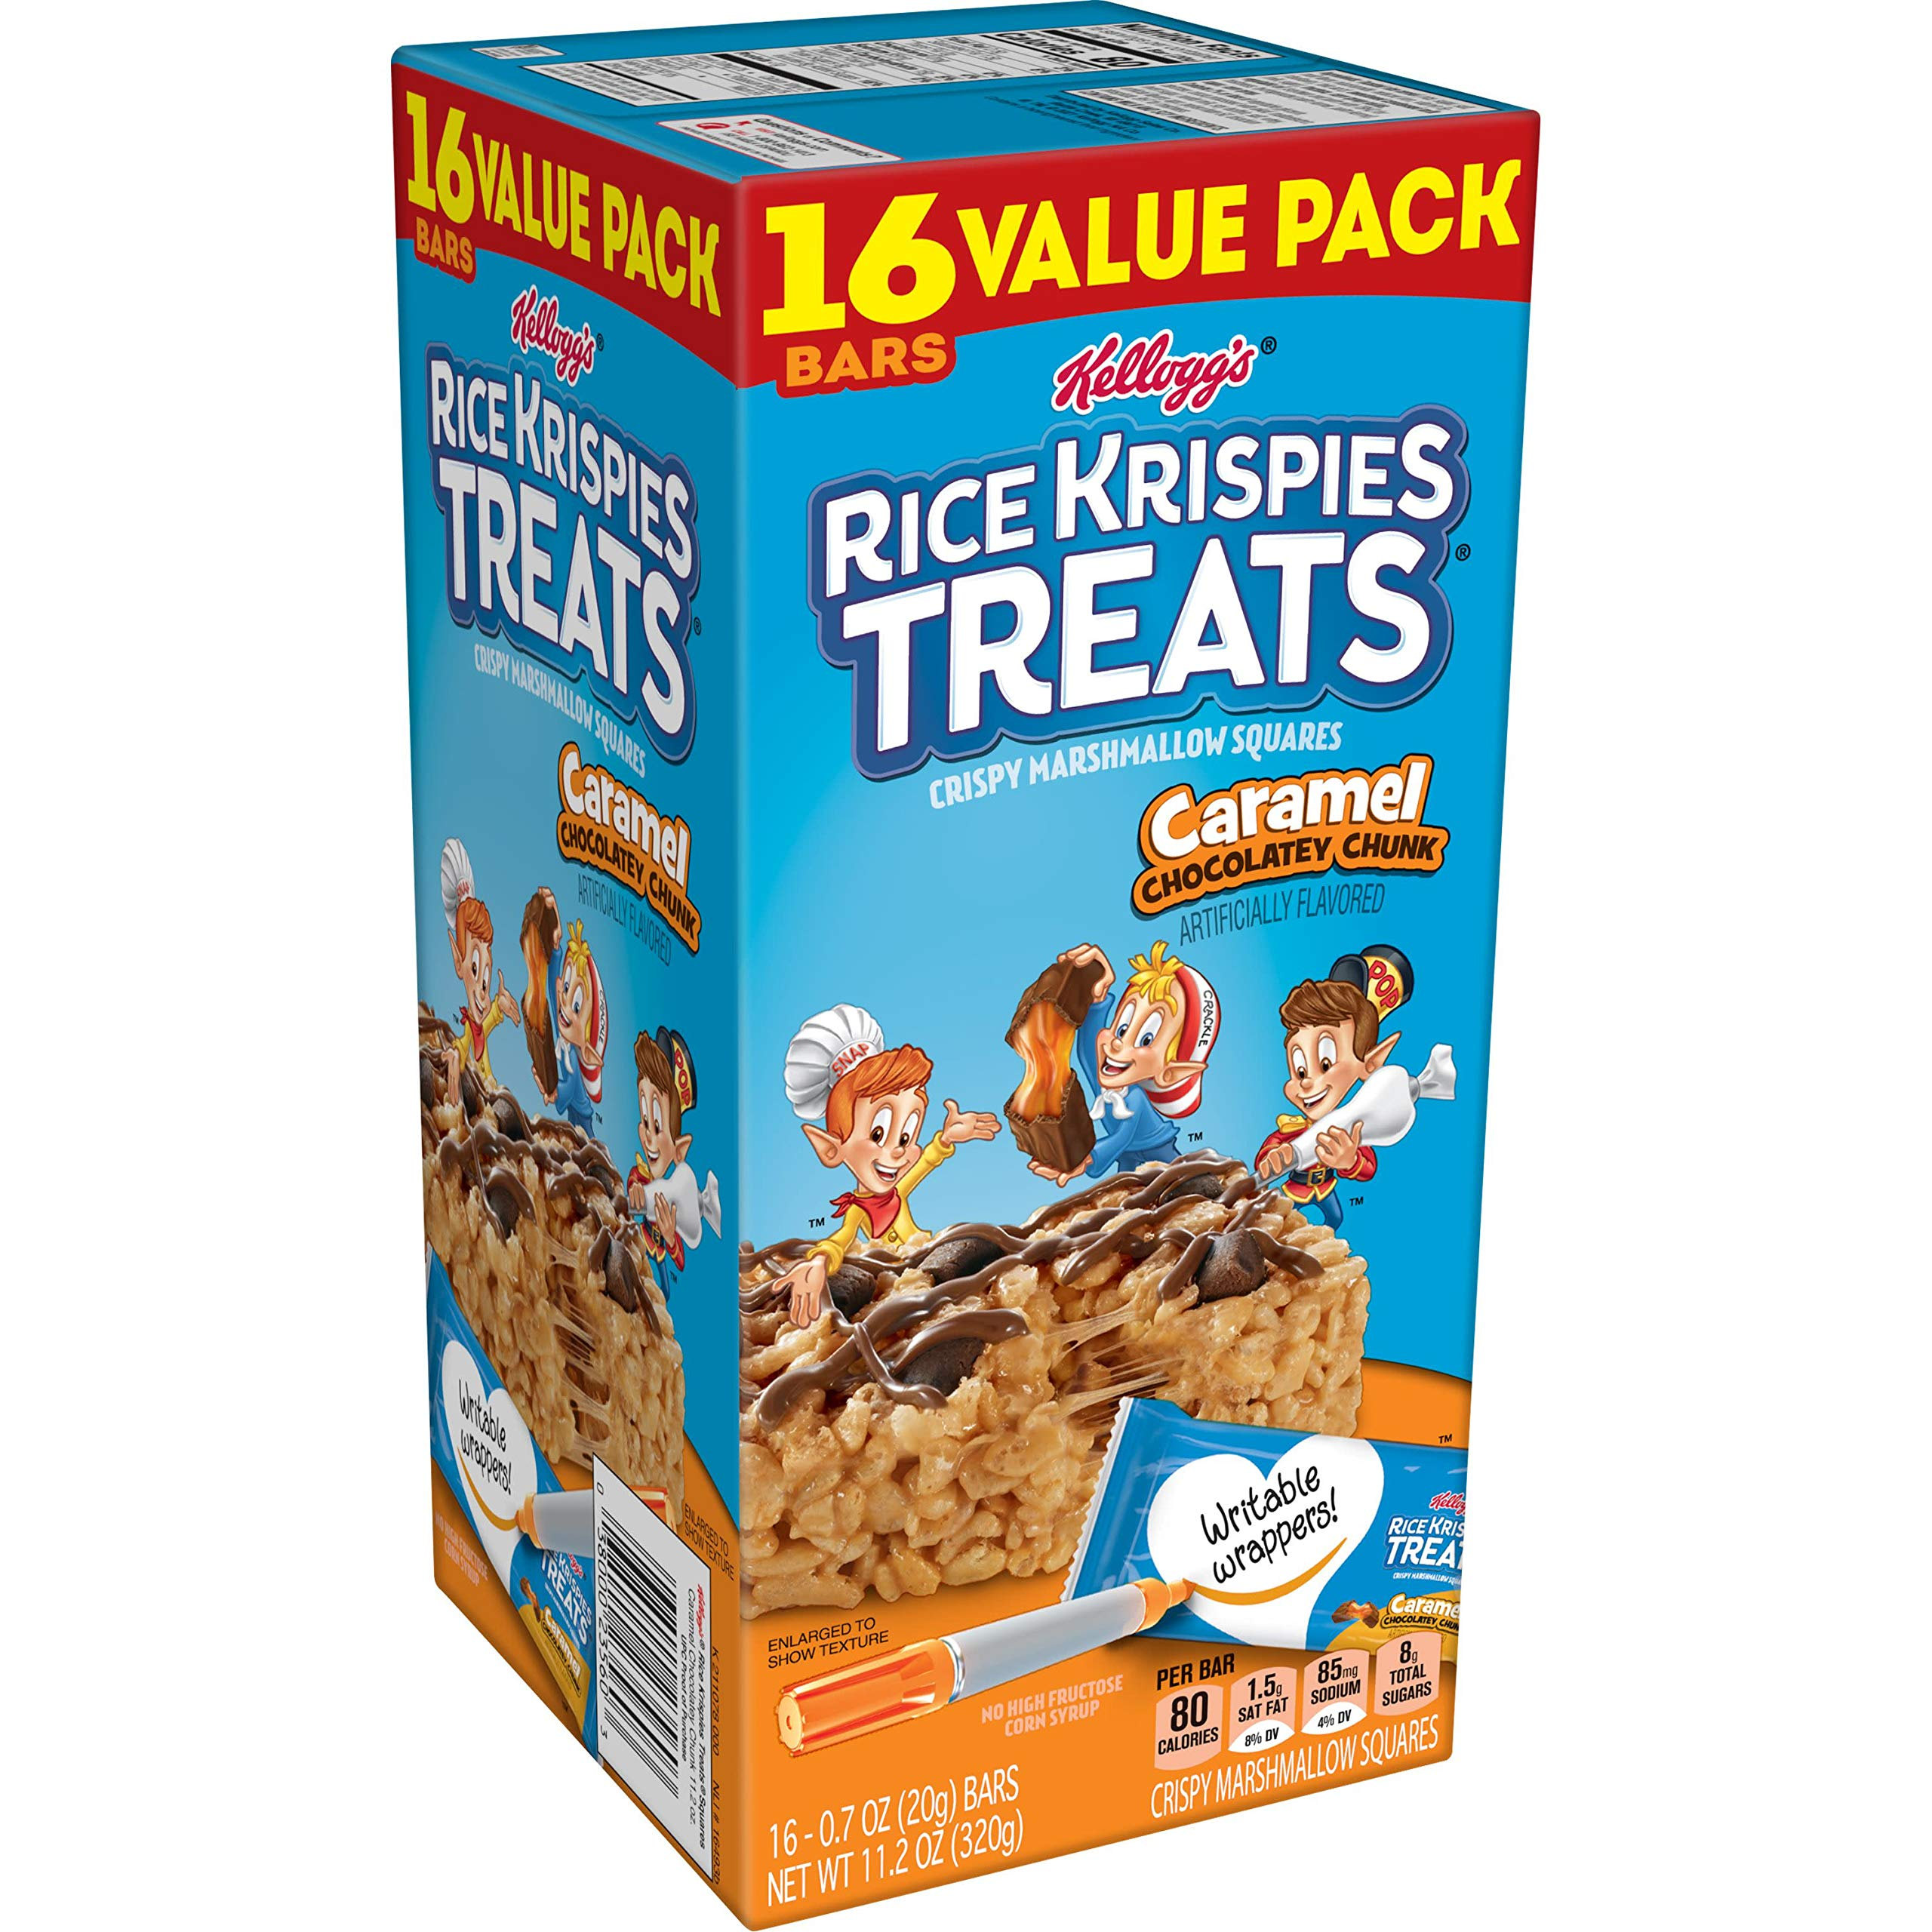 Kellogg's Rice Krispies Treats, Crispy Marshmallow Squares, Caramel Chocolatey Chunk, Classic Kid School Snack, Value Pack, 11.2oz Box (16 Count)